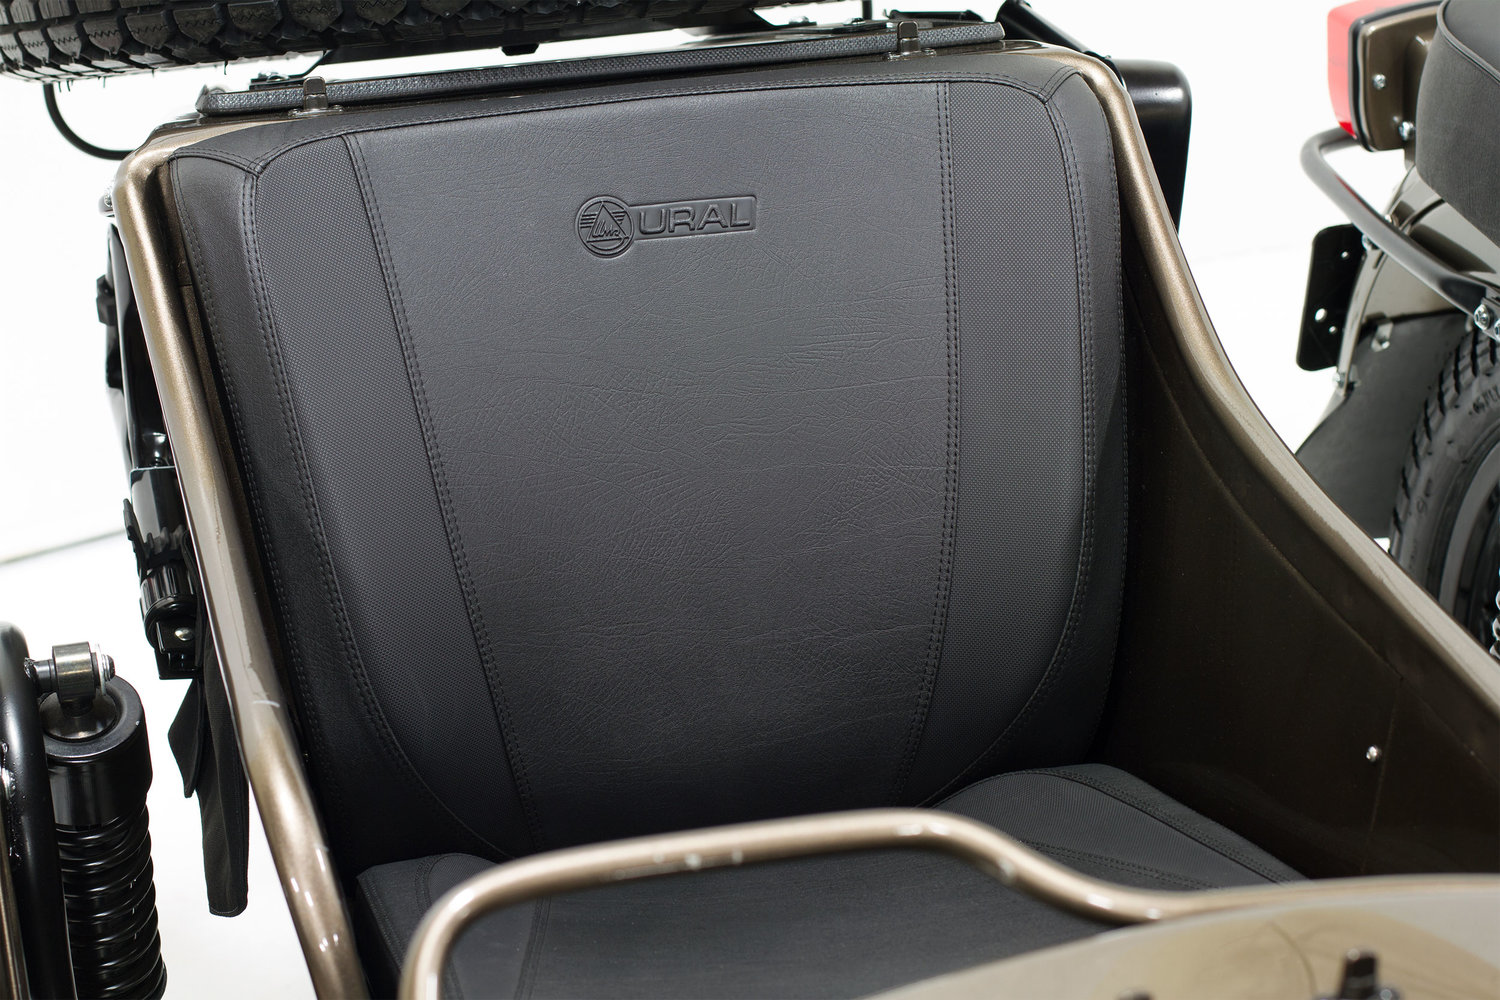 2017 Ural Motorcycles Gear Up in Edwardsville, Illinois